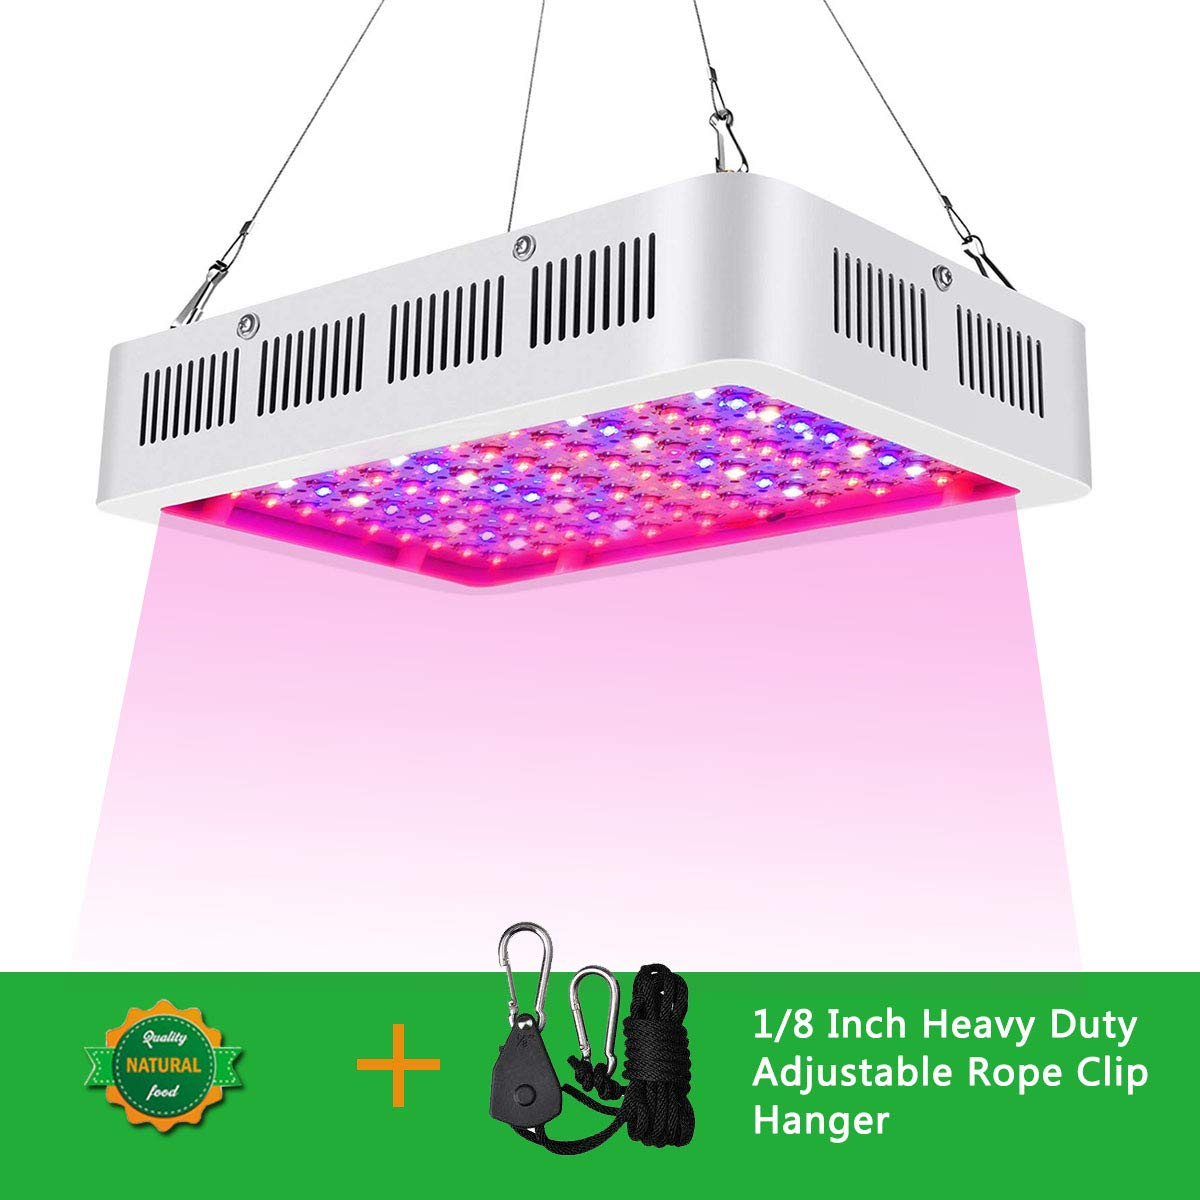 LED Grow Lights 1000W Double Chips Full Spectrum with 4 Years Local Warranty Perfect for Greenhouse Hydroponic Indoor Plants Veg and Flower All Phases of Plant Growth by Anordsem